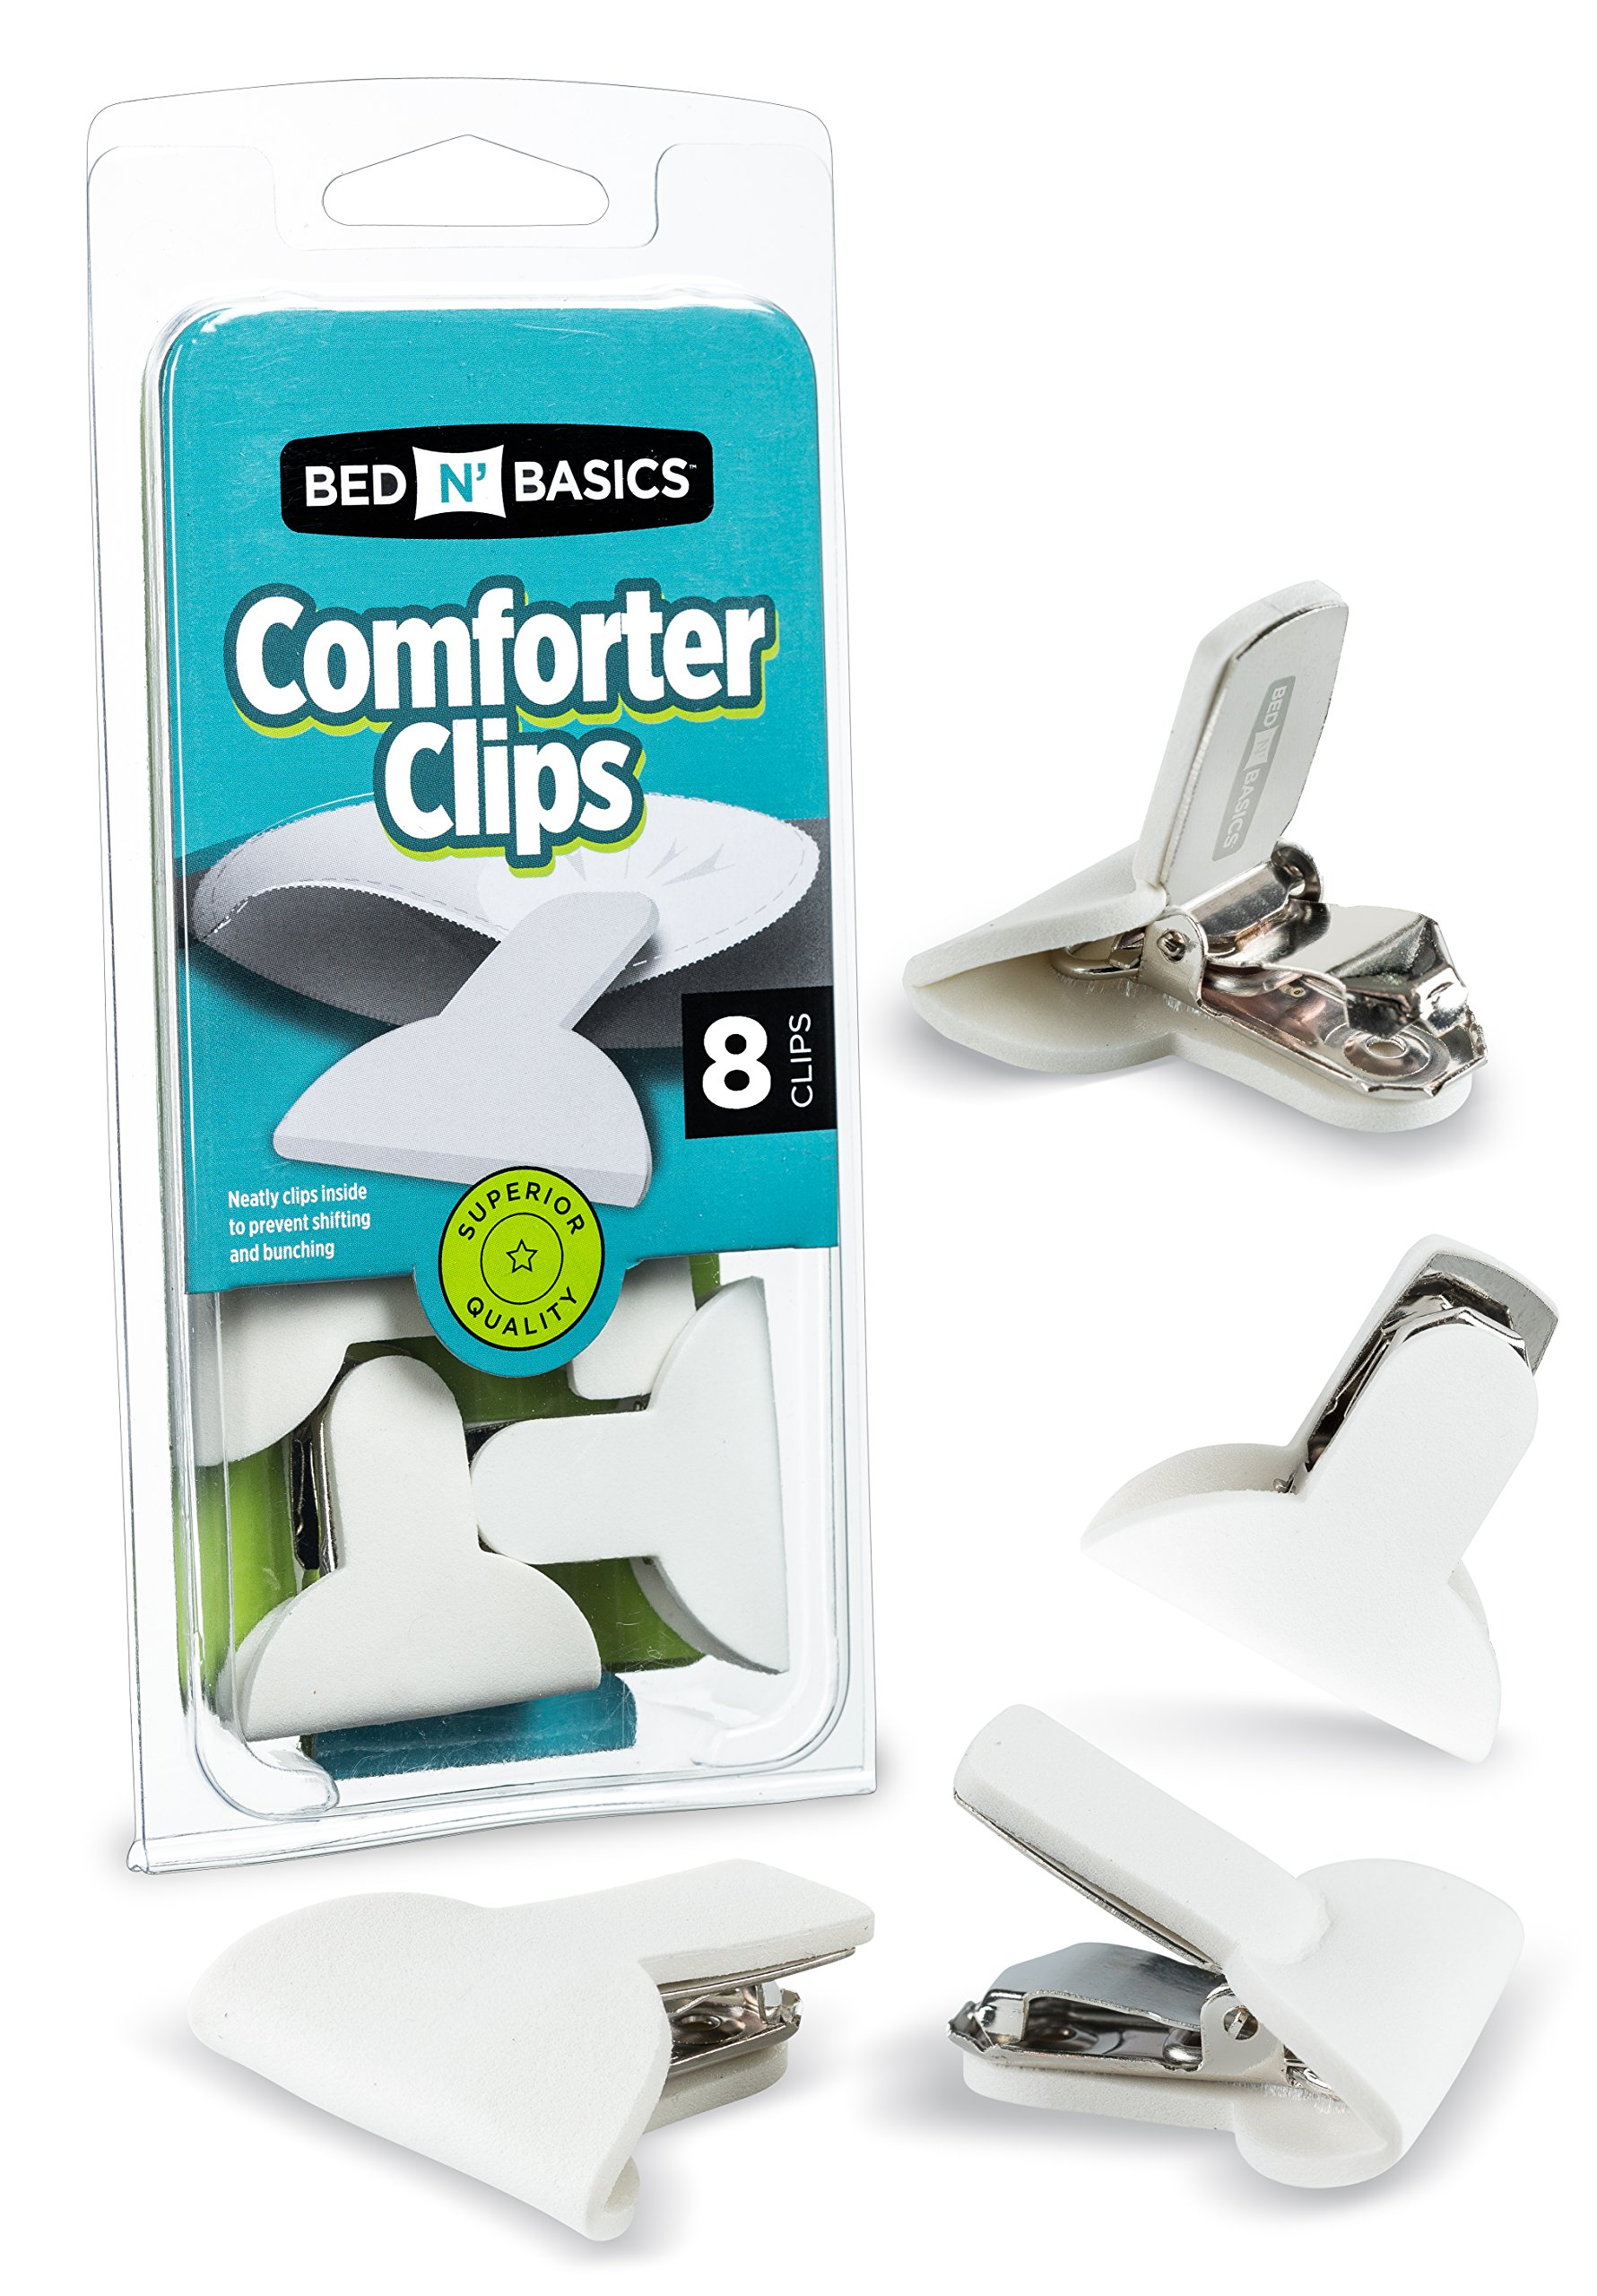 Padded Comforter & Duvet Clips - Blanket Fasteners to Secure Bedding - No More Shifting or Bunching in Covers - 8 Pack - by Bed N' Basics